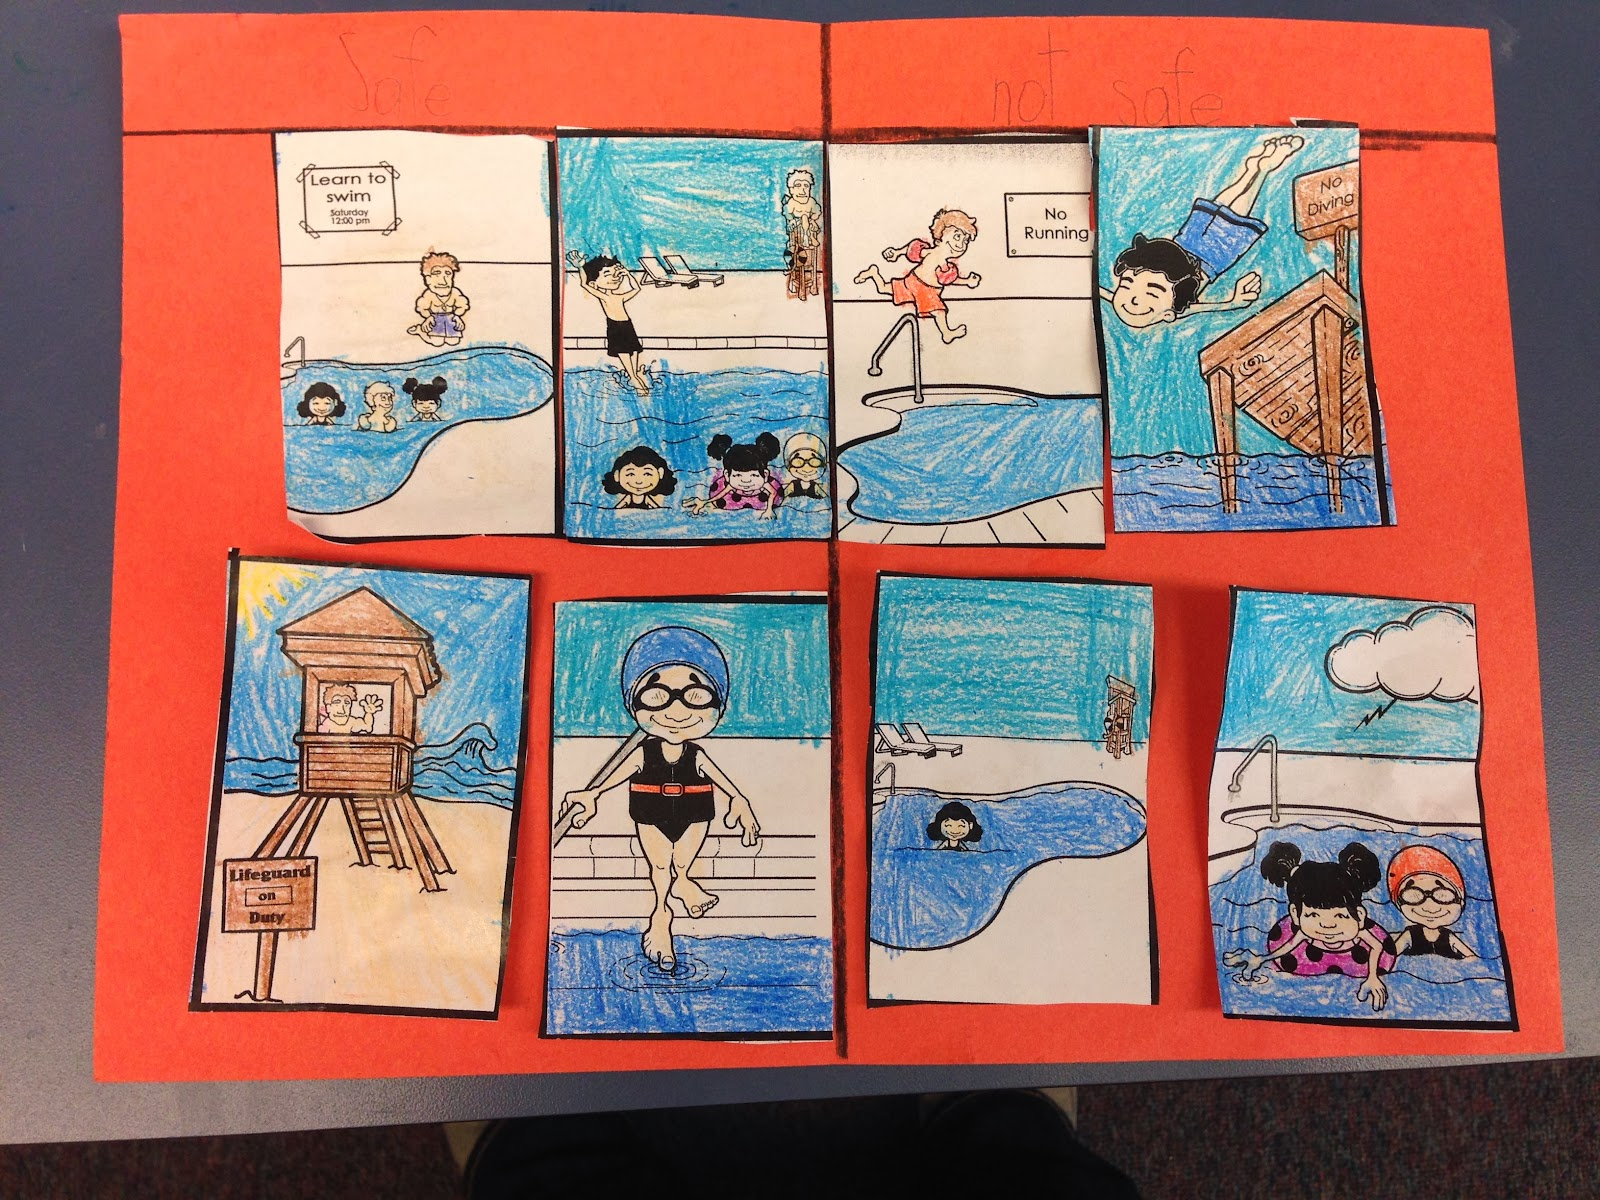 The Pathfinder Post Water Safety In 1st Grade